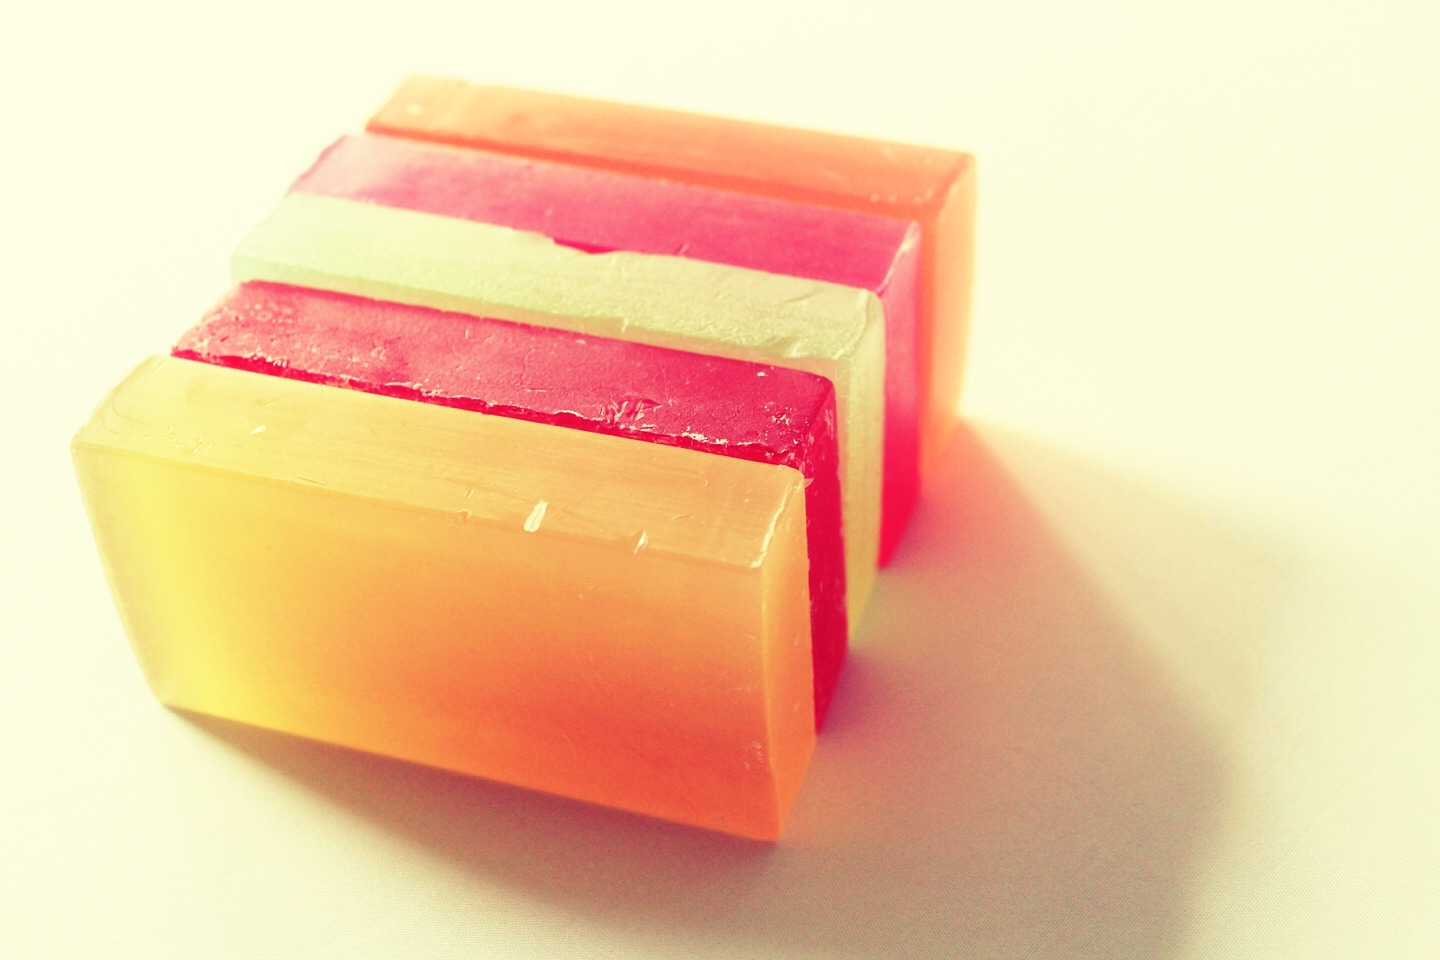 Don't forget to use hot water and lots of soap to open pores and soften hairs for a cleaner smoother shave every time